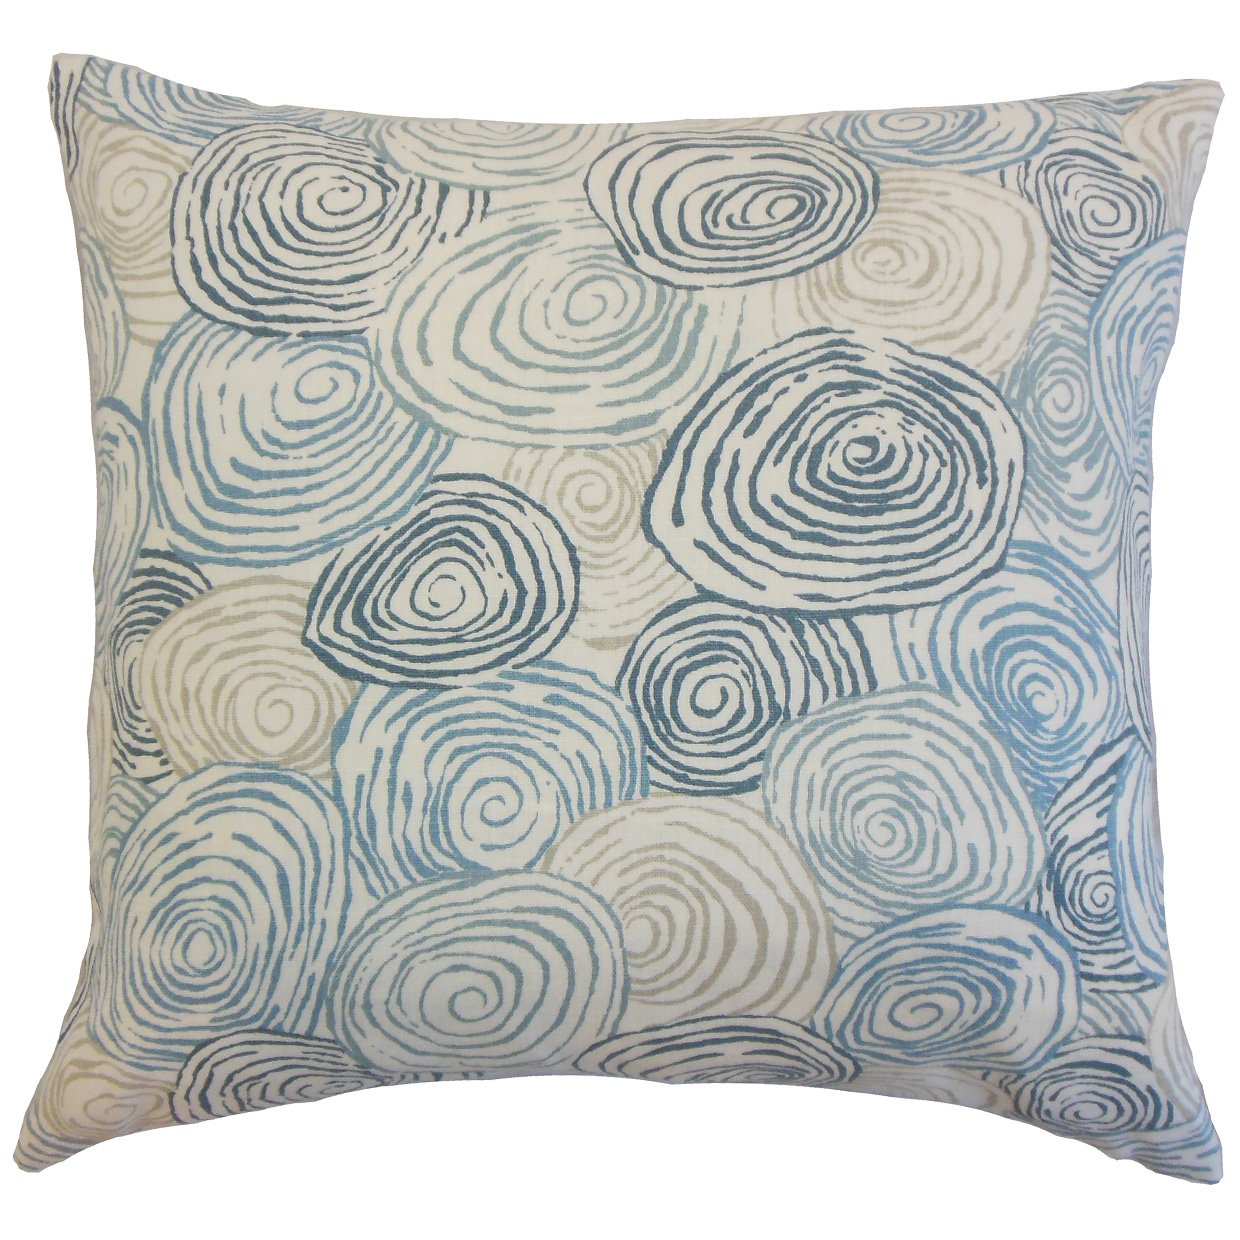 The Pillow Collection Blakesley Graphic Bedding Sham River King//20 x 36